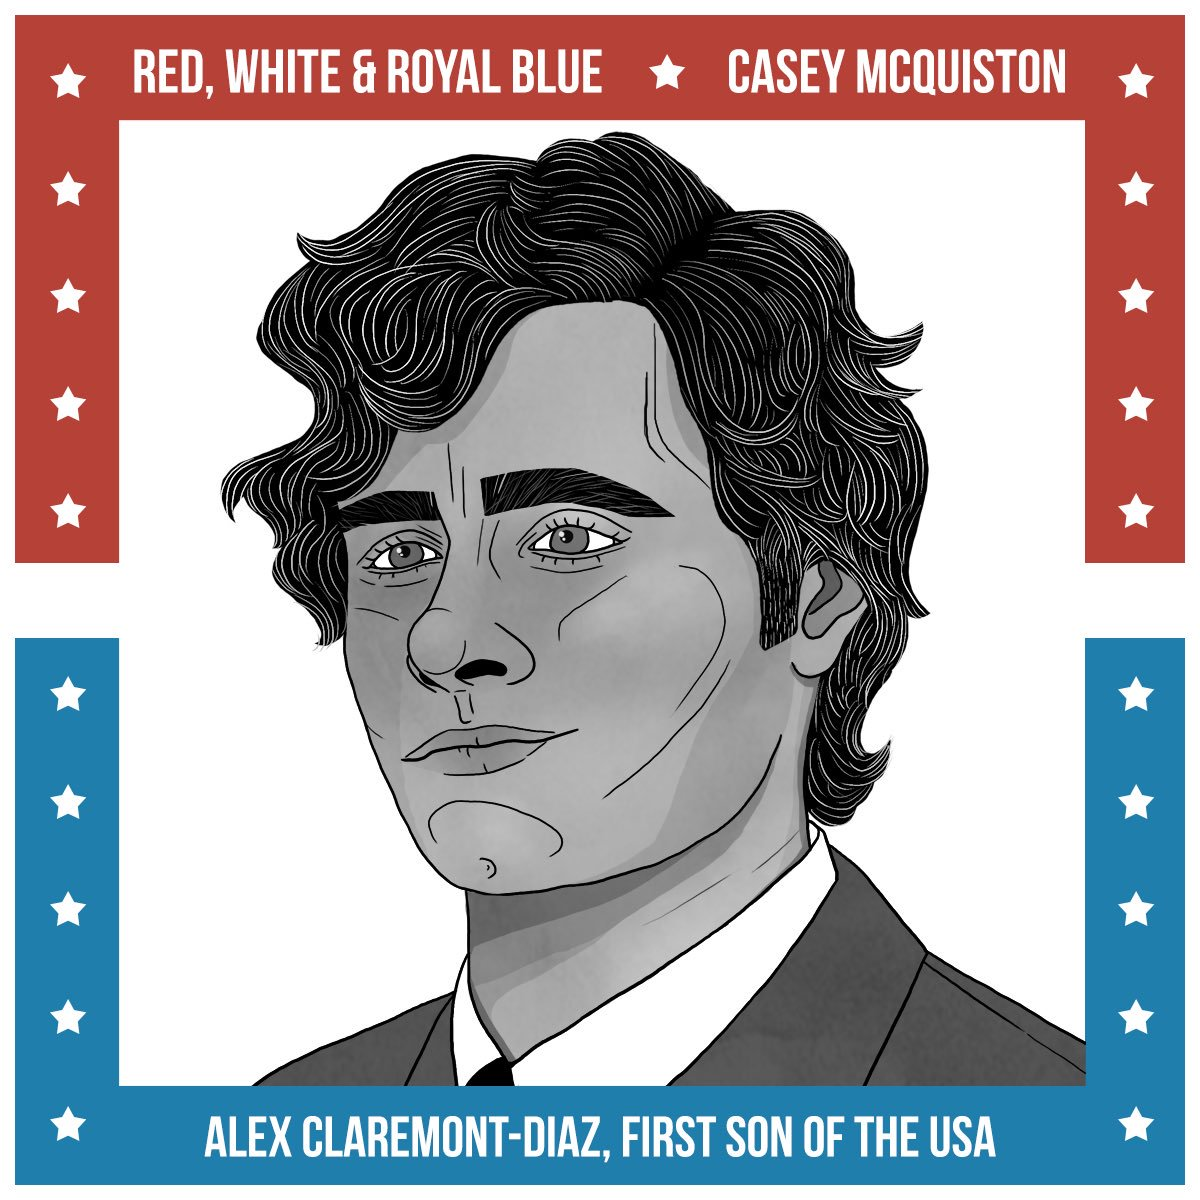 Red, White & Royal Blue' book review: Pride, politics and permission